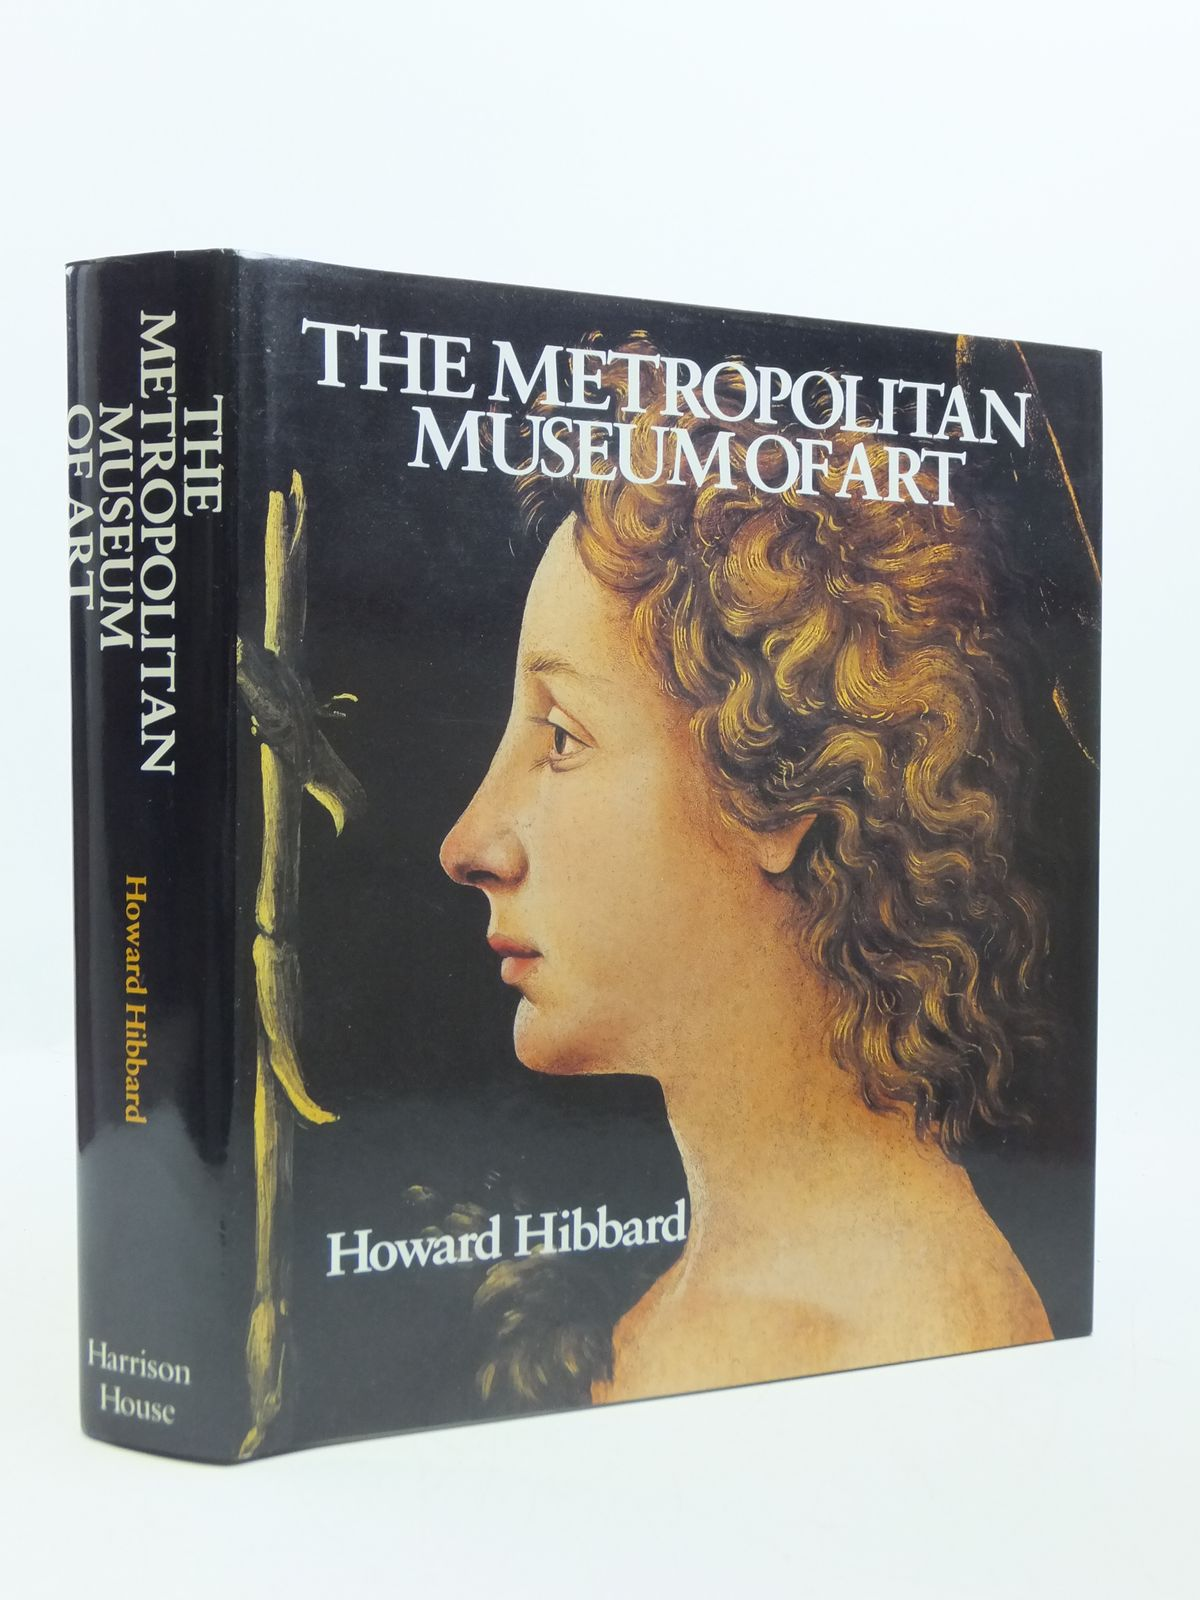 Photo of THE METROPOLITAN MUSEUM OF ART written by Hibbard, Howard published by Harrison House (STOCK CODE: 1604723)  for sale by Stella & Rose's Books